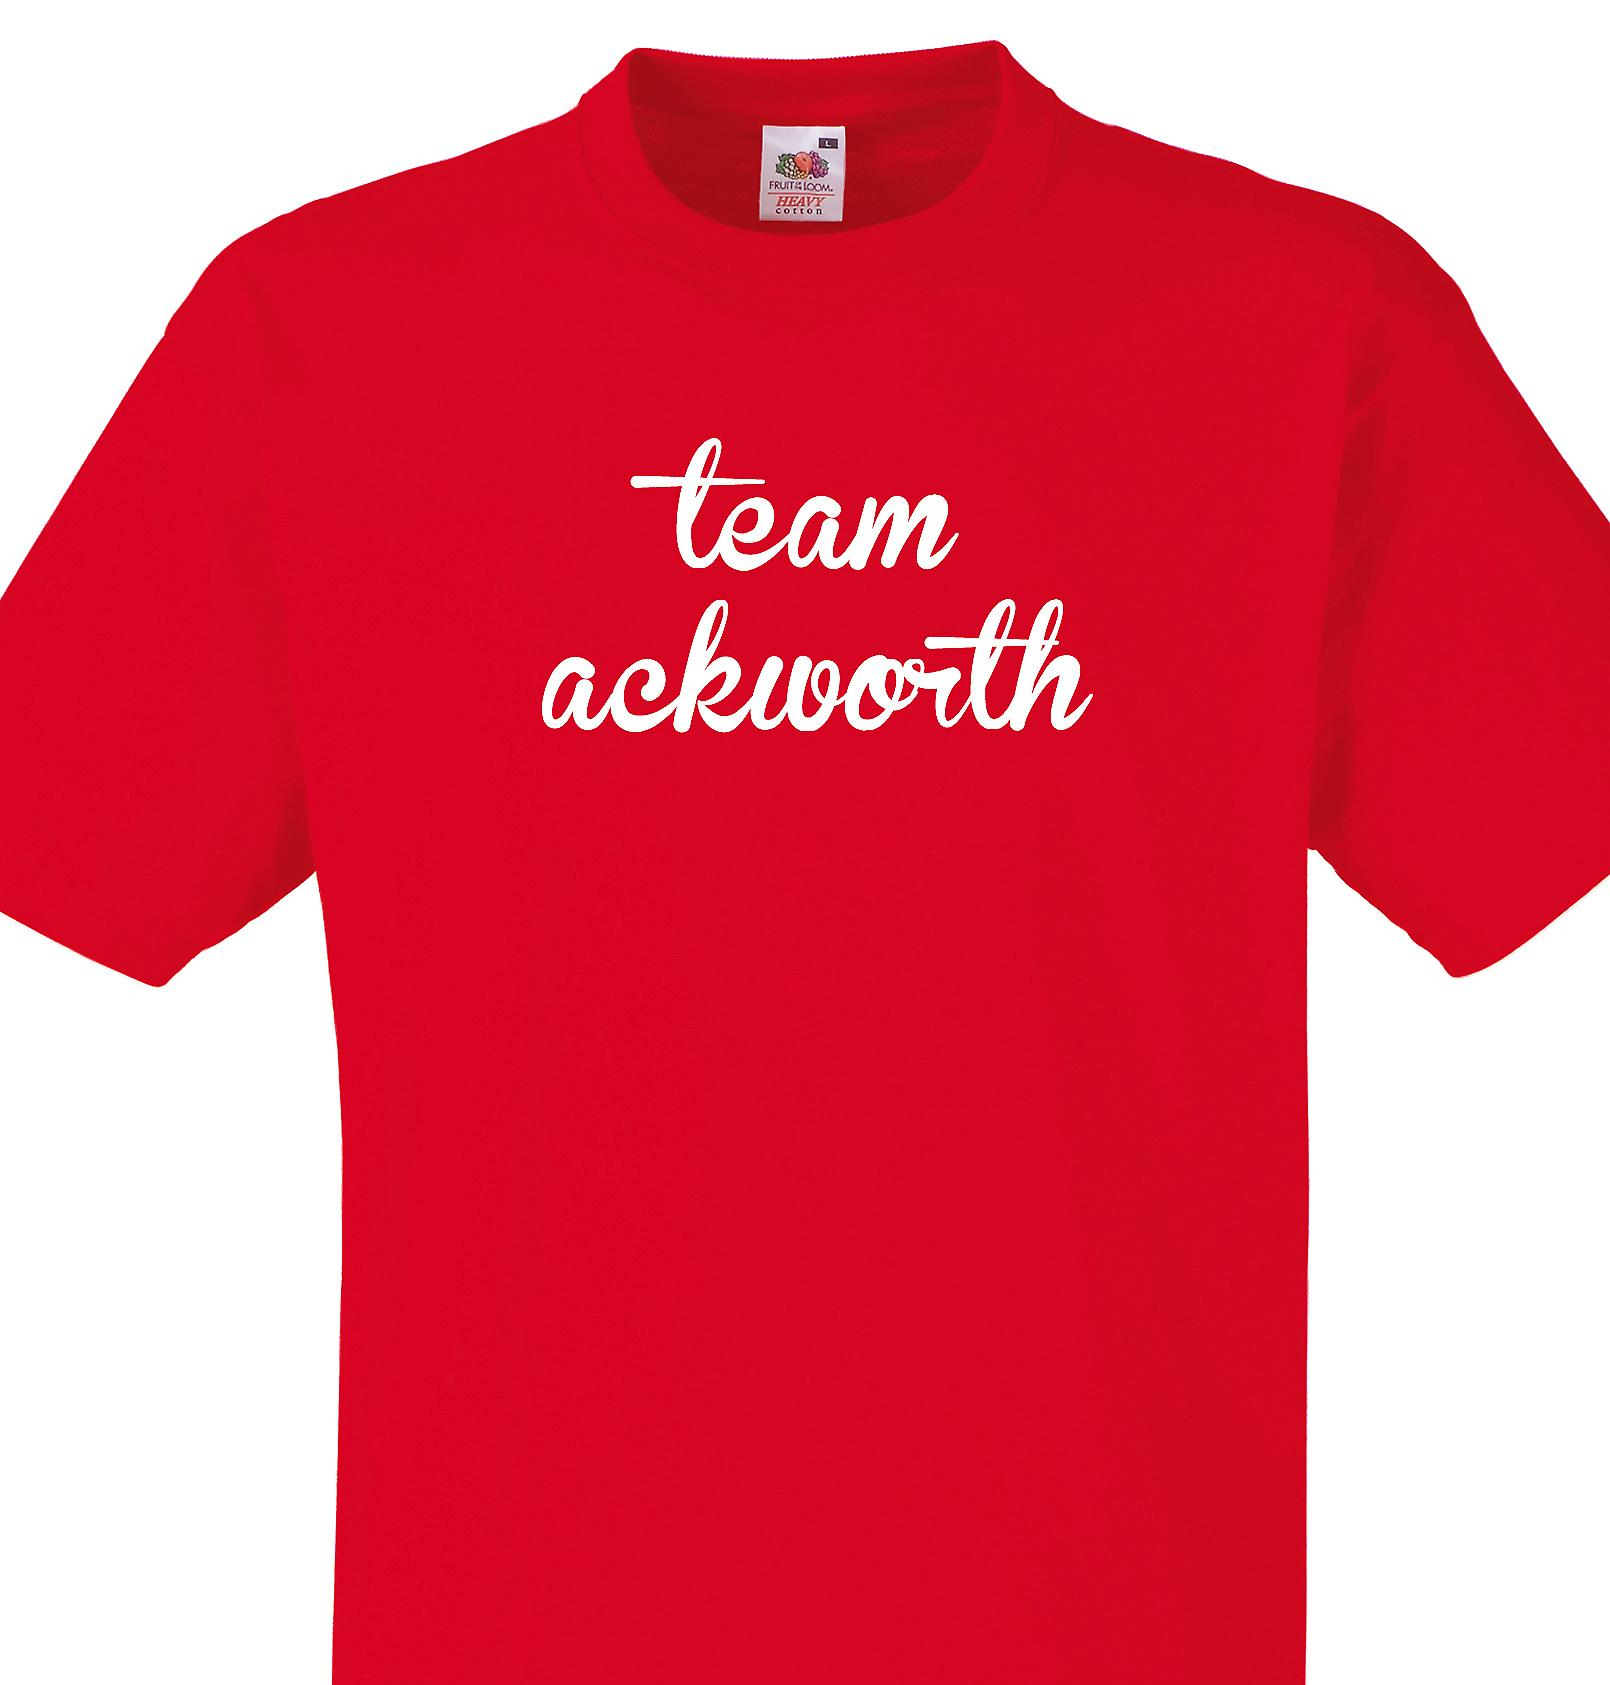 Team Ackworth Red T shirt